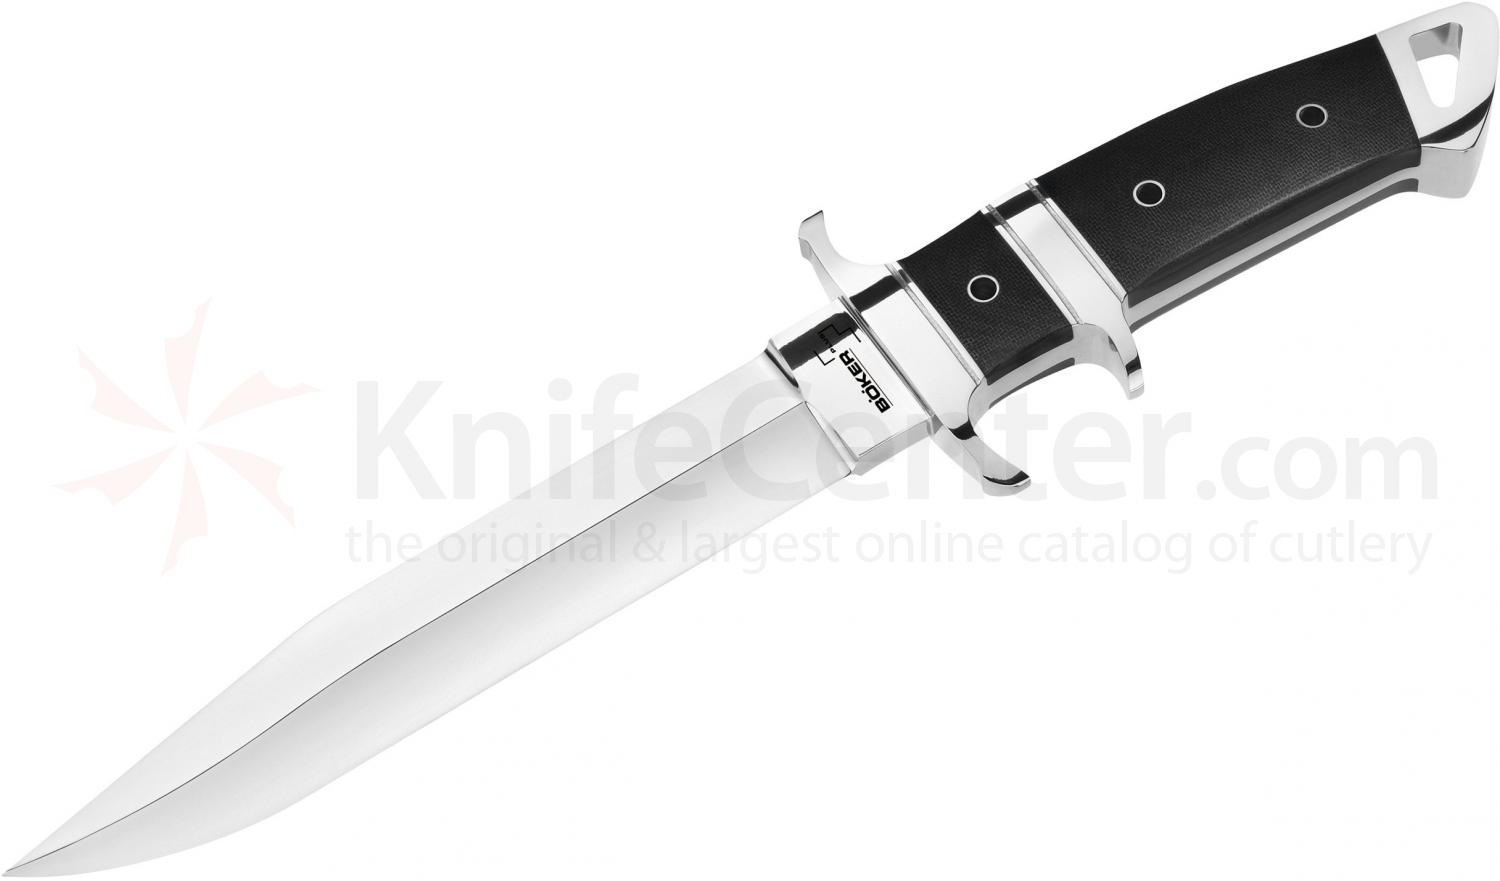 Boker Plus Kressler Subhilt Fighter Fixed 7-1/2 inch Blade, Micarta Handles